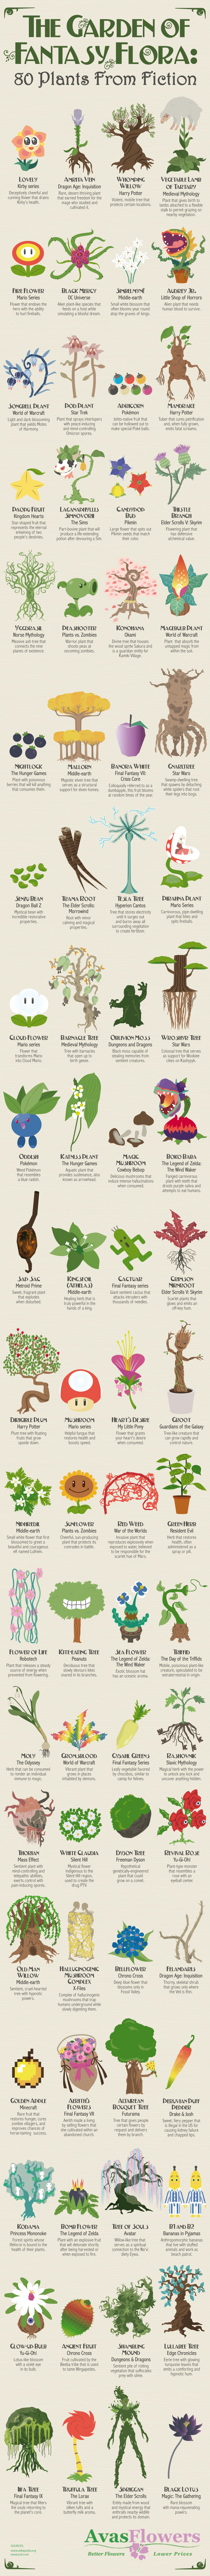 The Garden of Fantasy Flora: 80 Plants From Fiction - Avasflowers.net - Infographic